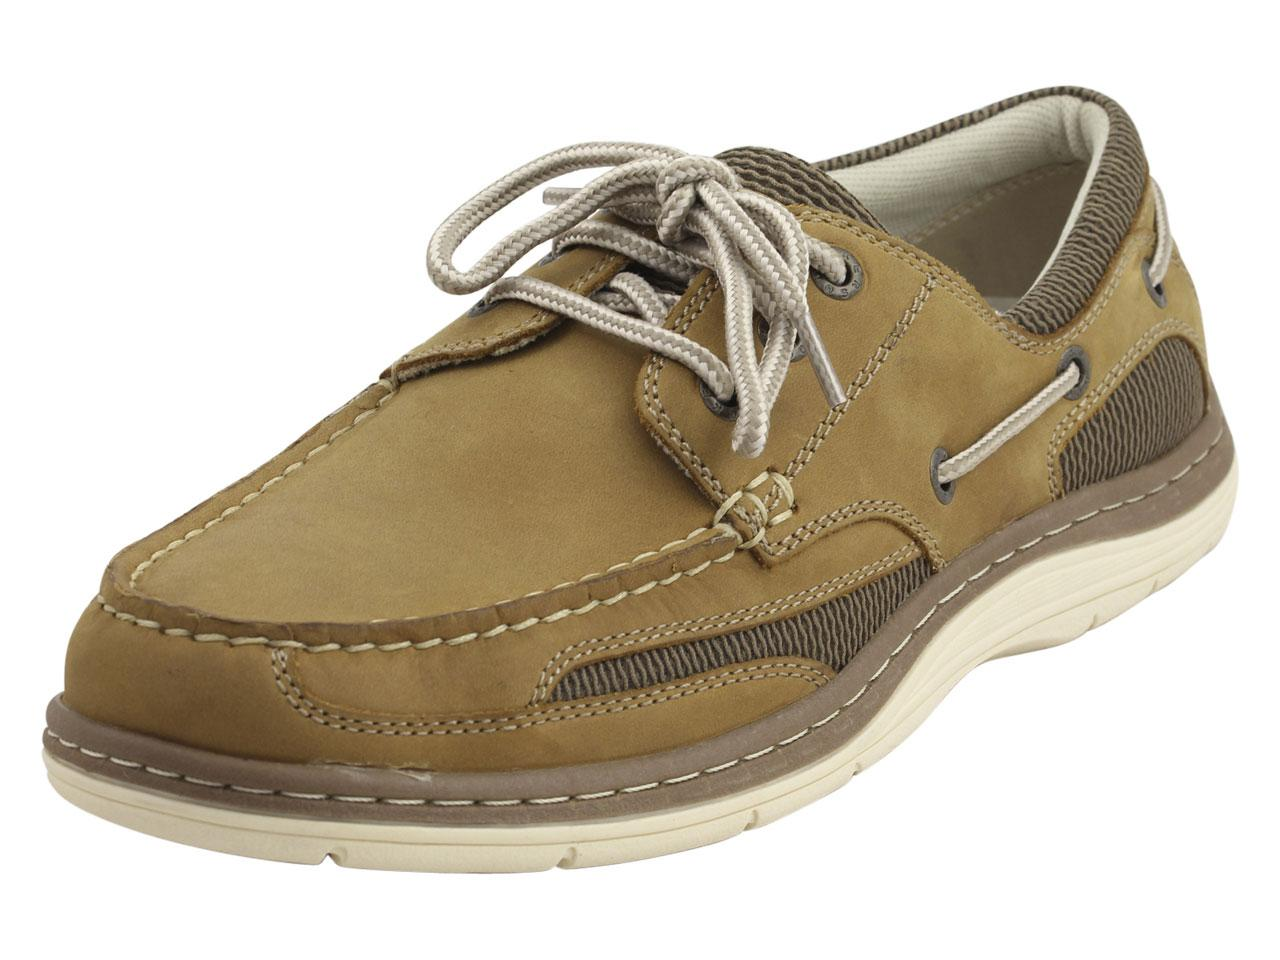 Image of Dockers Men's Lakeport Memory Foam Loafers Boat Shoes - Brown - 13 D(M) US